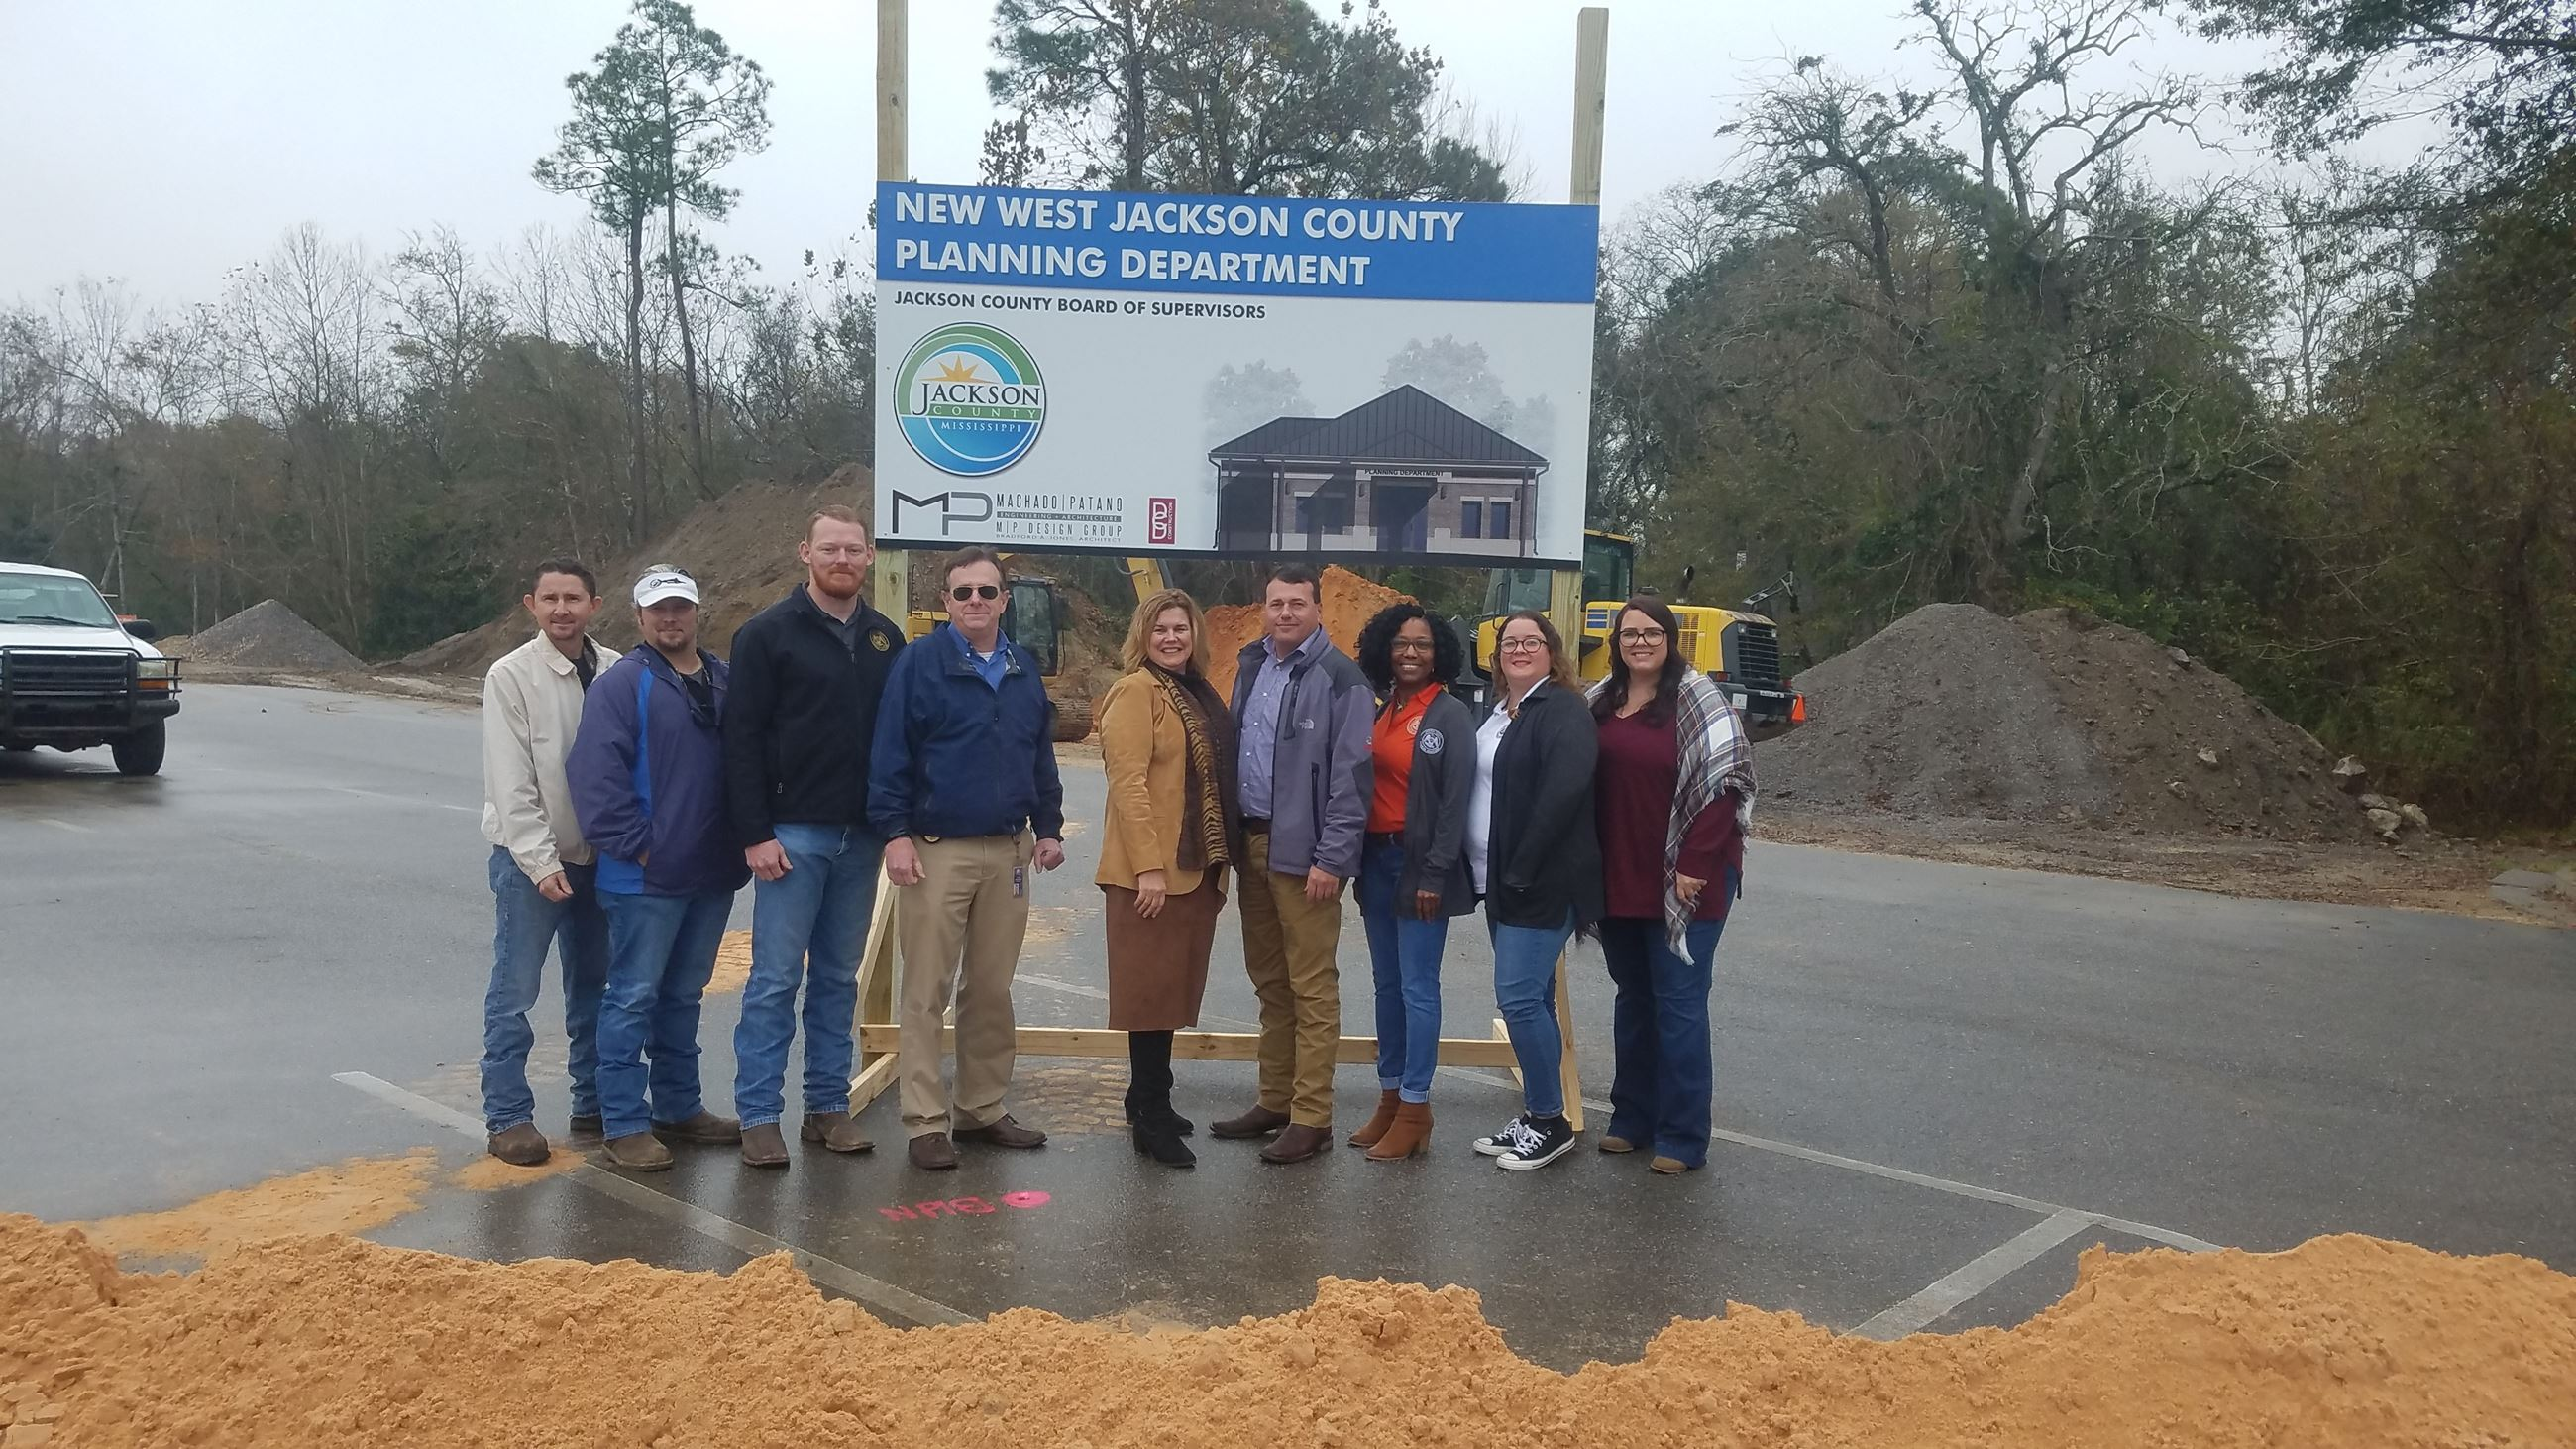 WJC Planning Groundbreaking - department